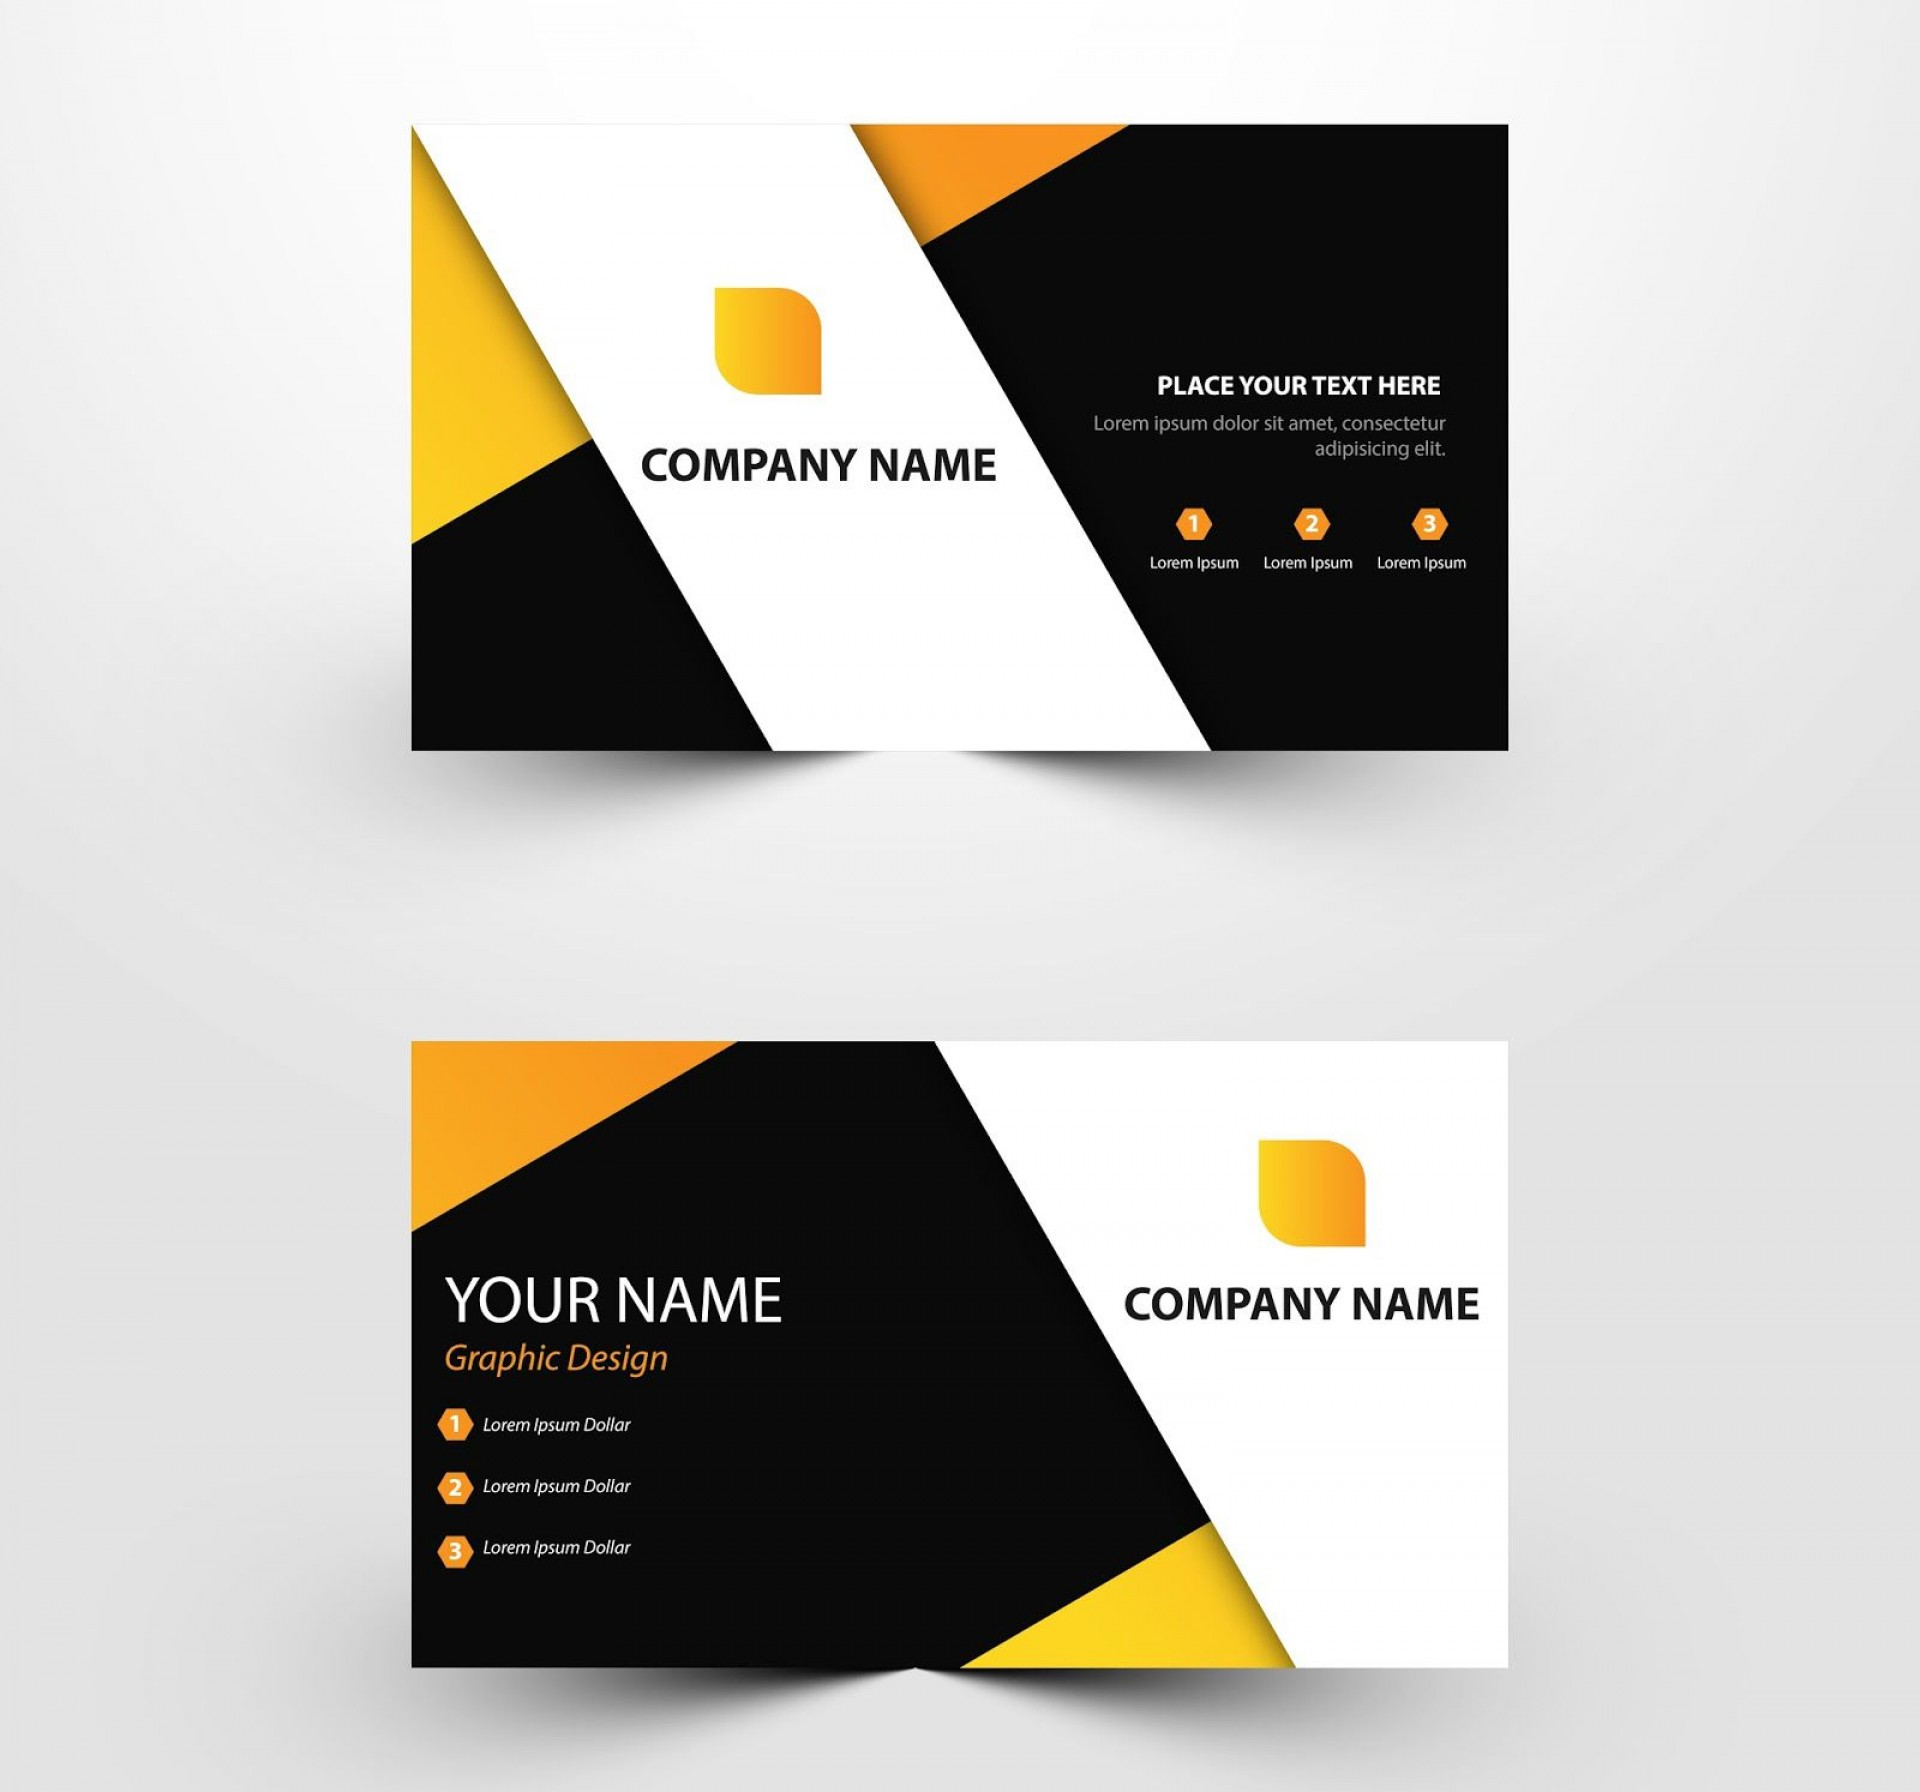 009 Fearsome Download Busines Card Template Concept  Free For Illustrator Visiting Layout Word 20101920